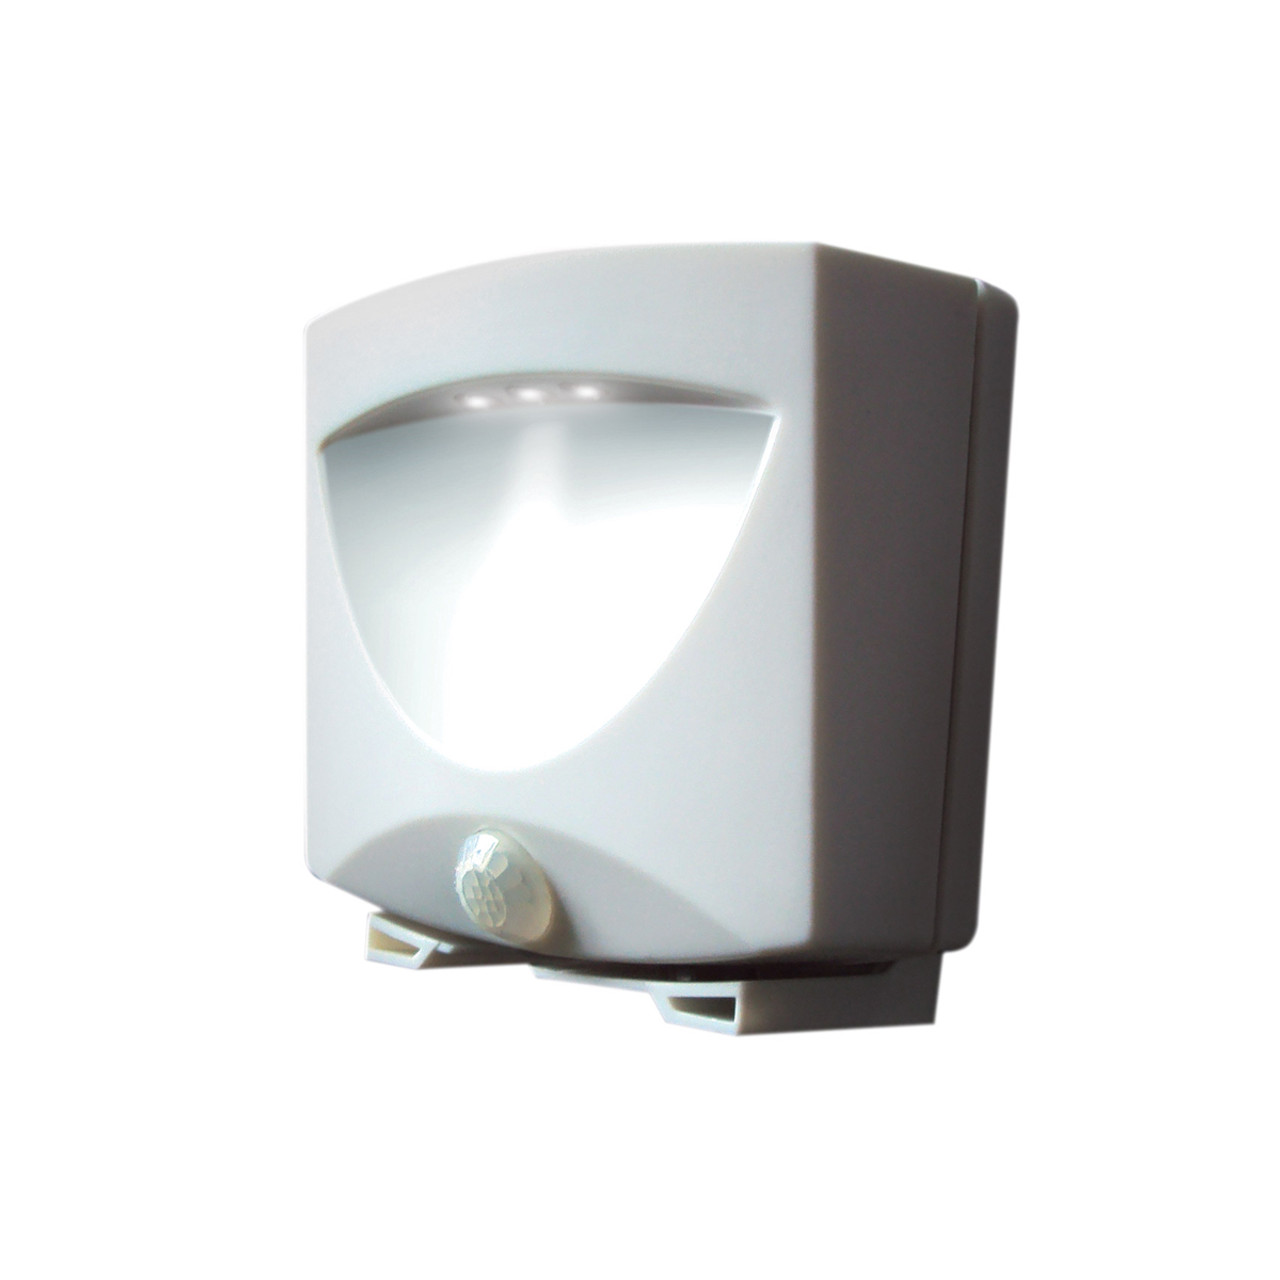 Battery-Powered Motion-Activated Outdoor Night-Light  sc 1 st  MAXSA Innovations & Battery-Powered Motion-Activated Outdoor Night-Light in White